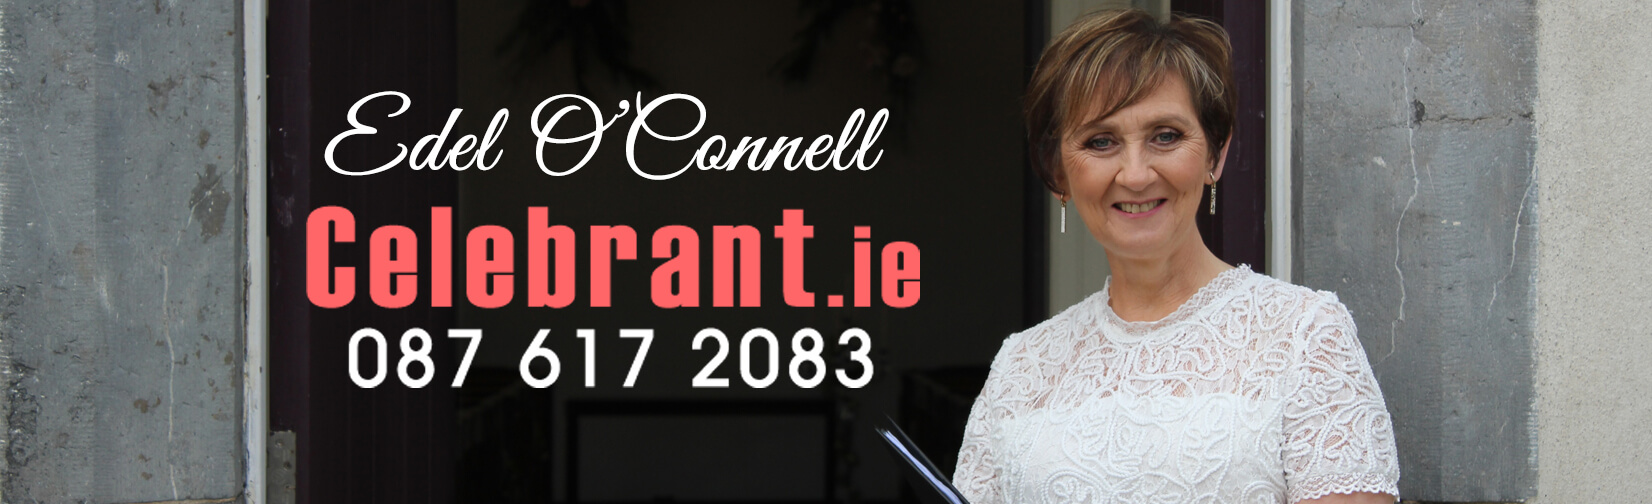 Lorraine McCarthy offers you the opportunity to celebrate your wedding your way